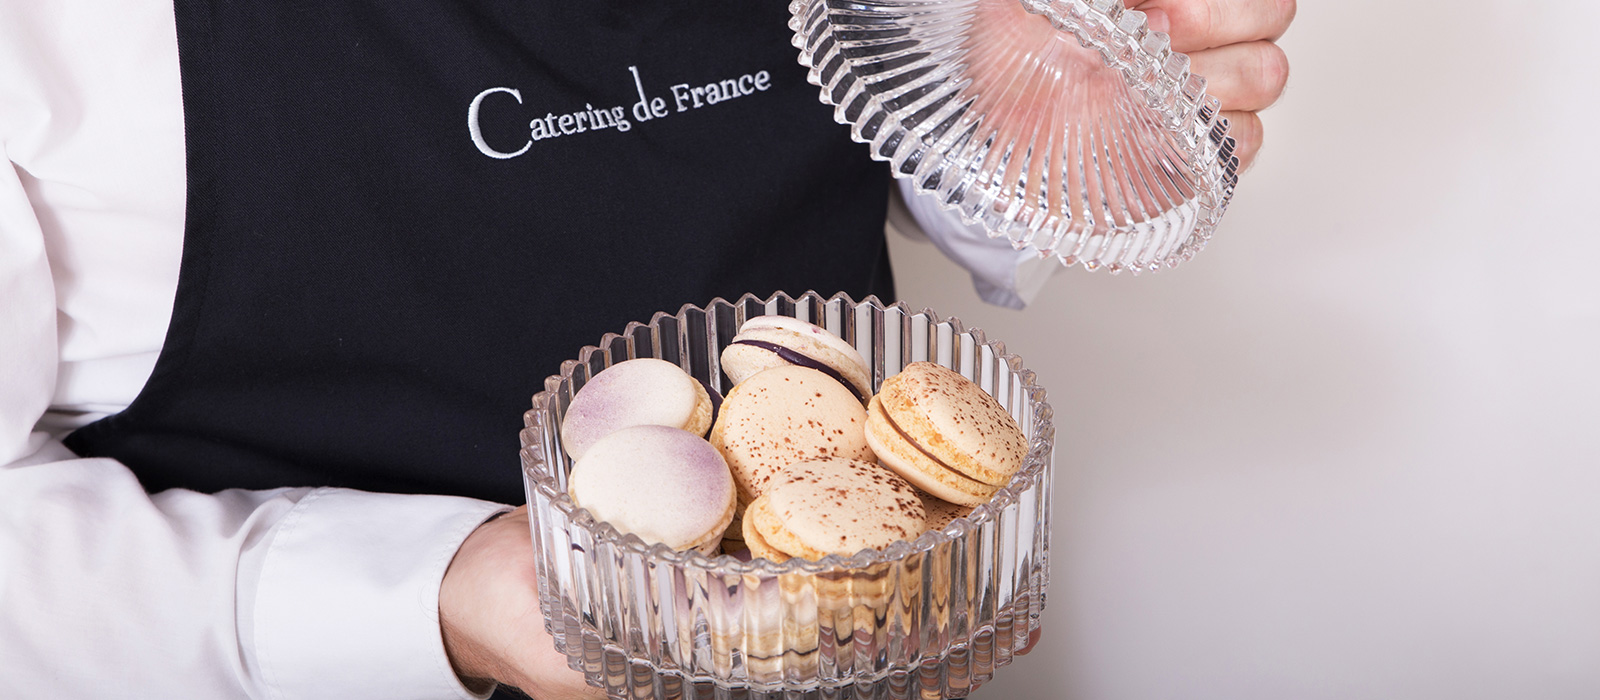 Catering de France - Ihr Catering in Wien